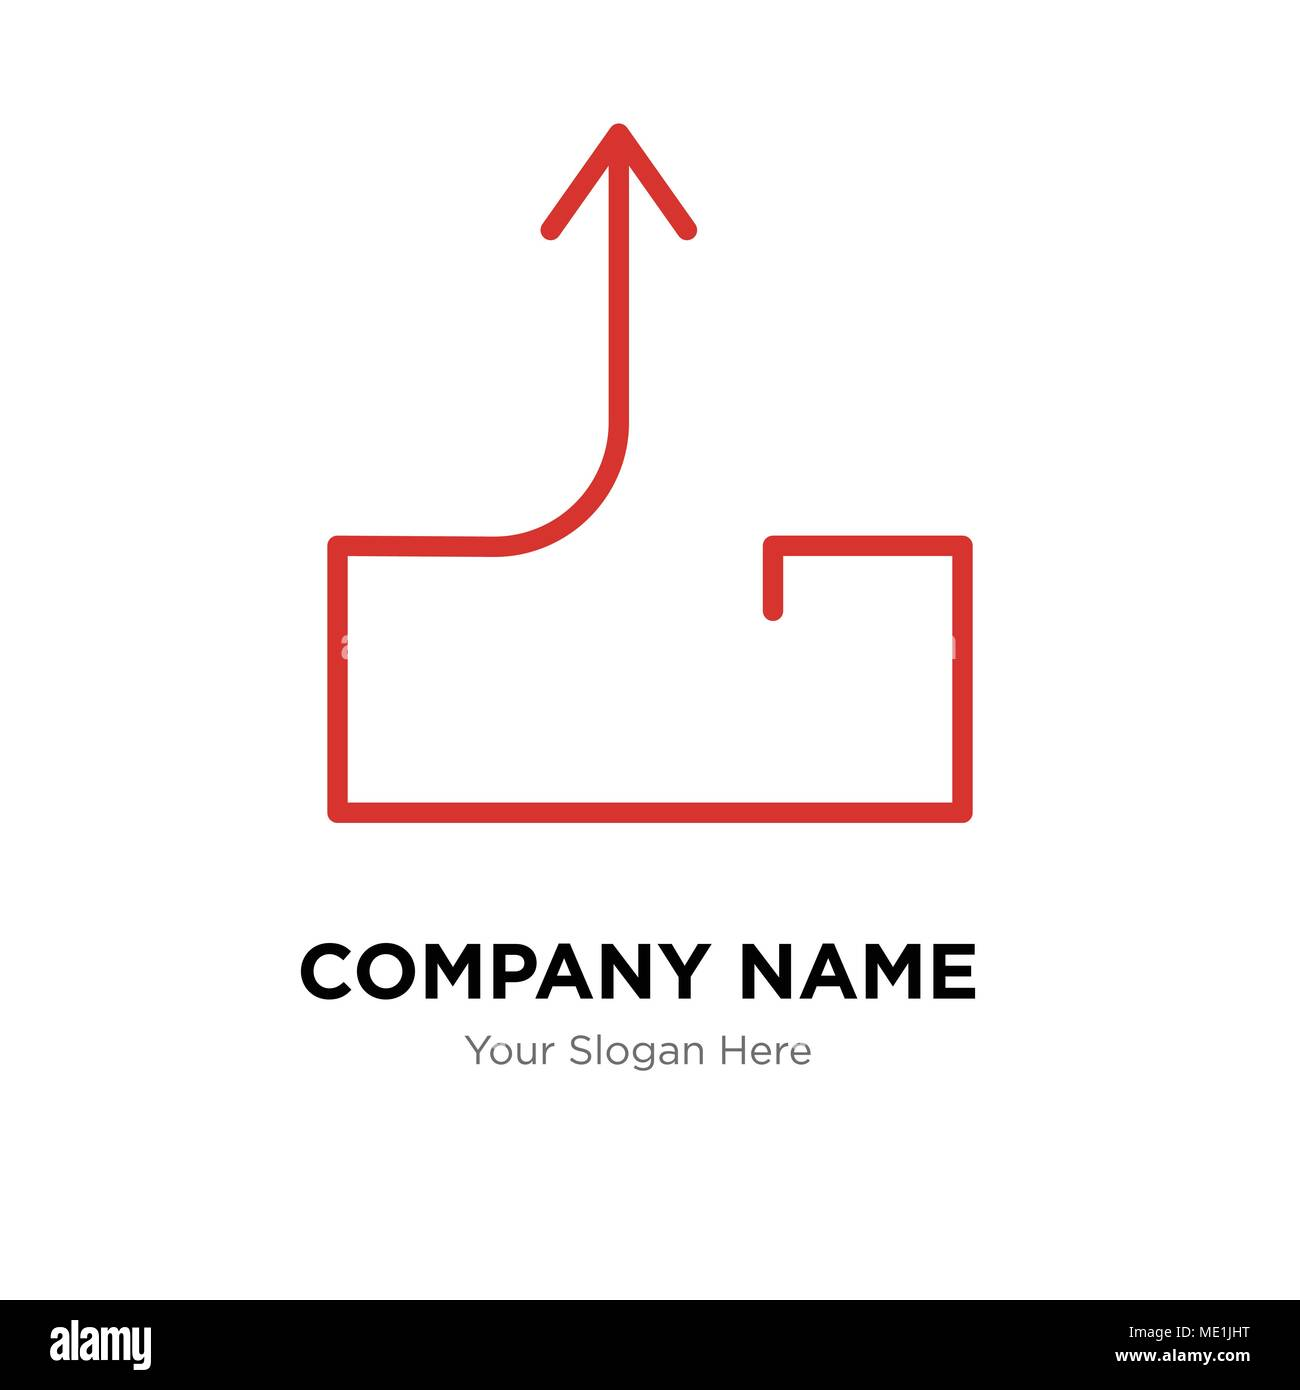 Outbox send mail company logo design template, Business corporate vector icon - Stock Image